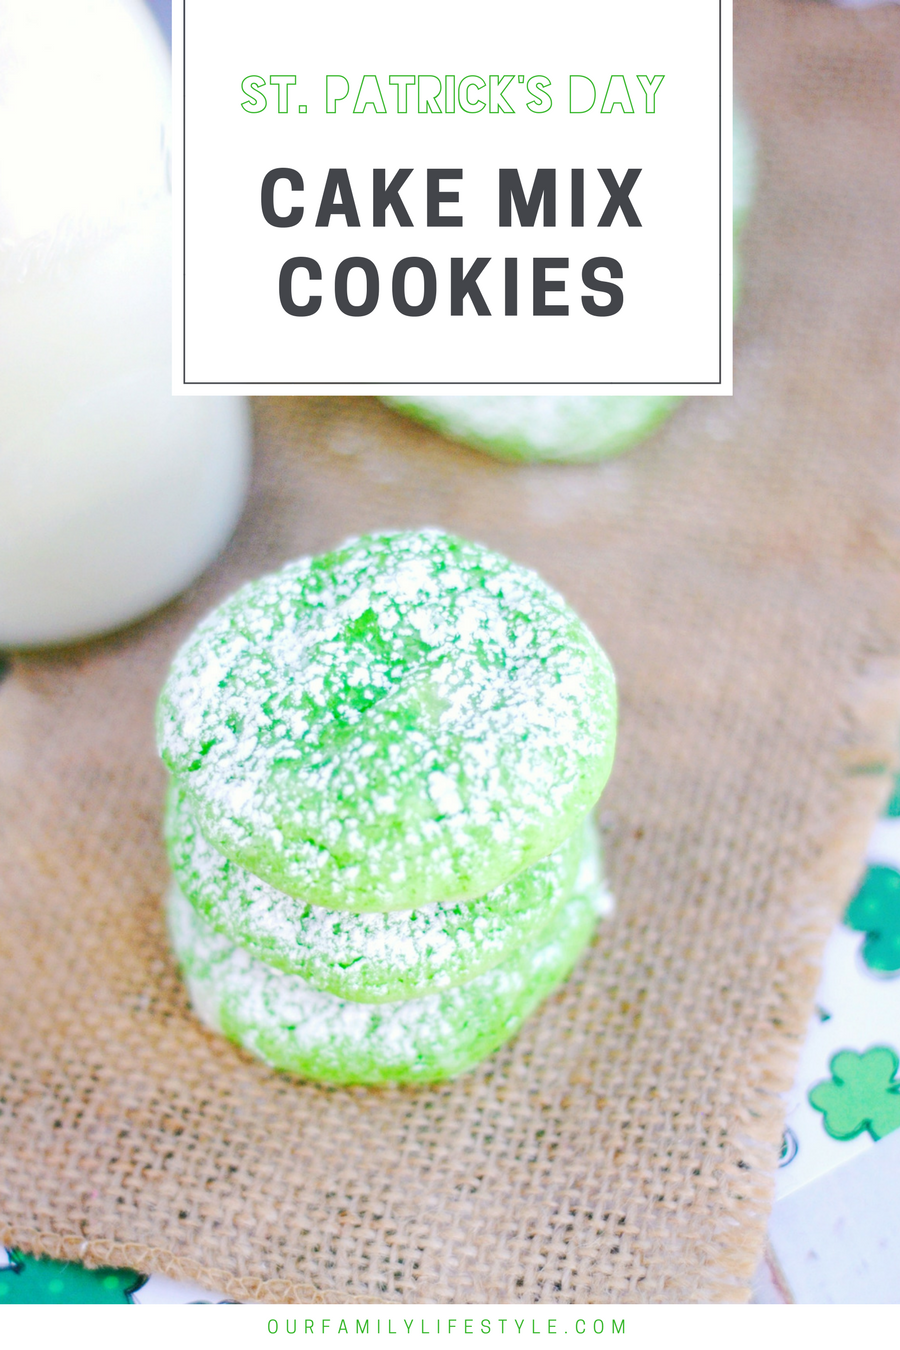 St. Patrick's Day Cake Mix Cookies